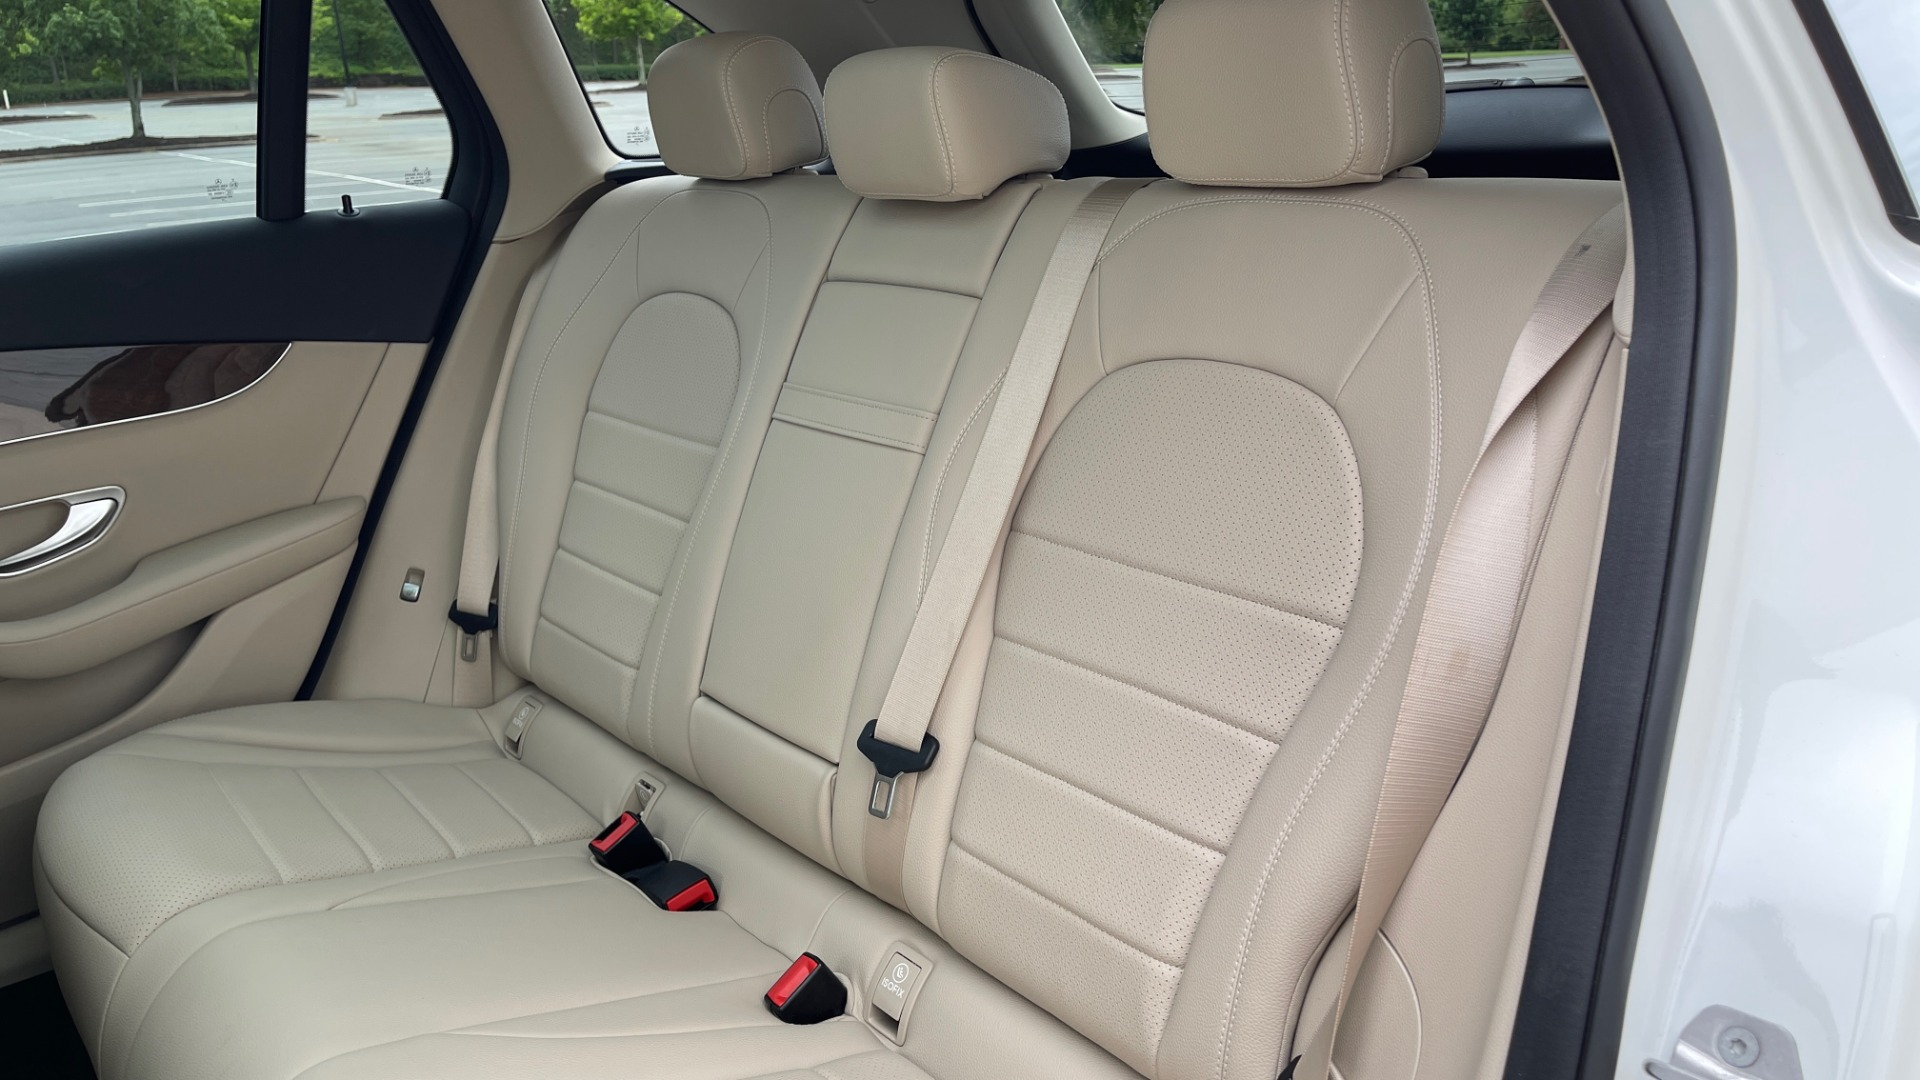 Used 2018 Mercedes-Benz GLC 300 PREMIUM / PANO-ROOF / HTD STS / PARK ASST / REARVIEW for sale $34,613 at Formula Imports in Charlotte NC 28227 49